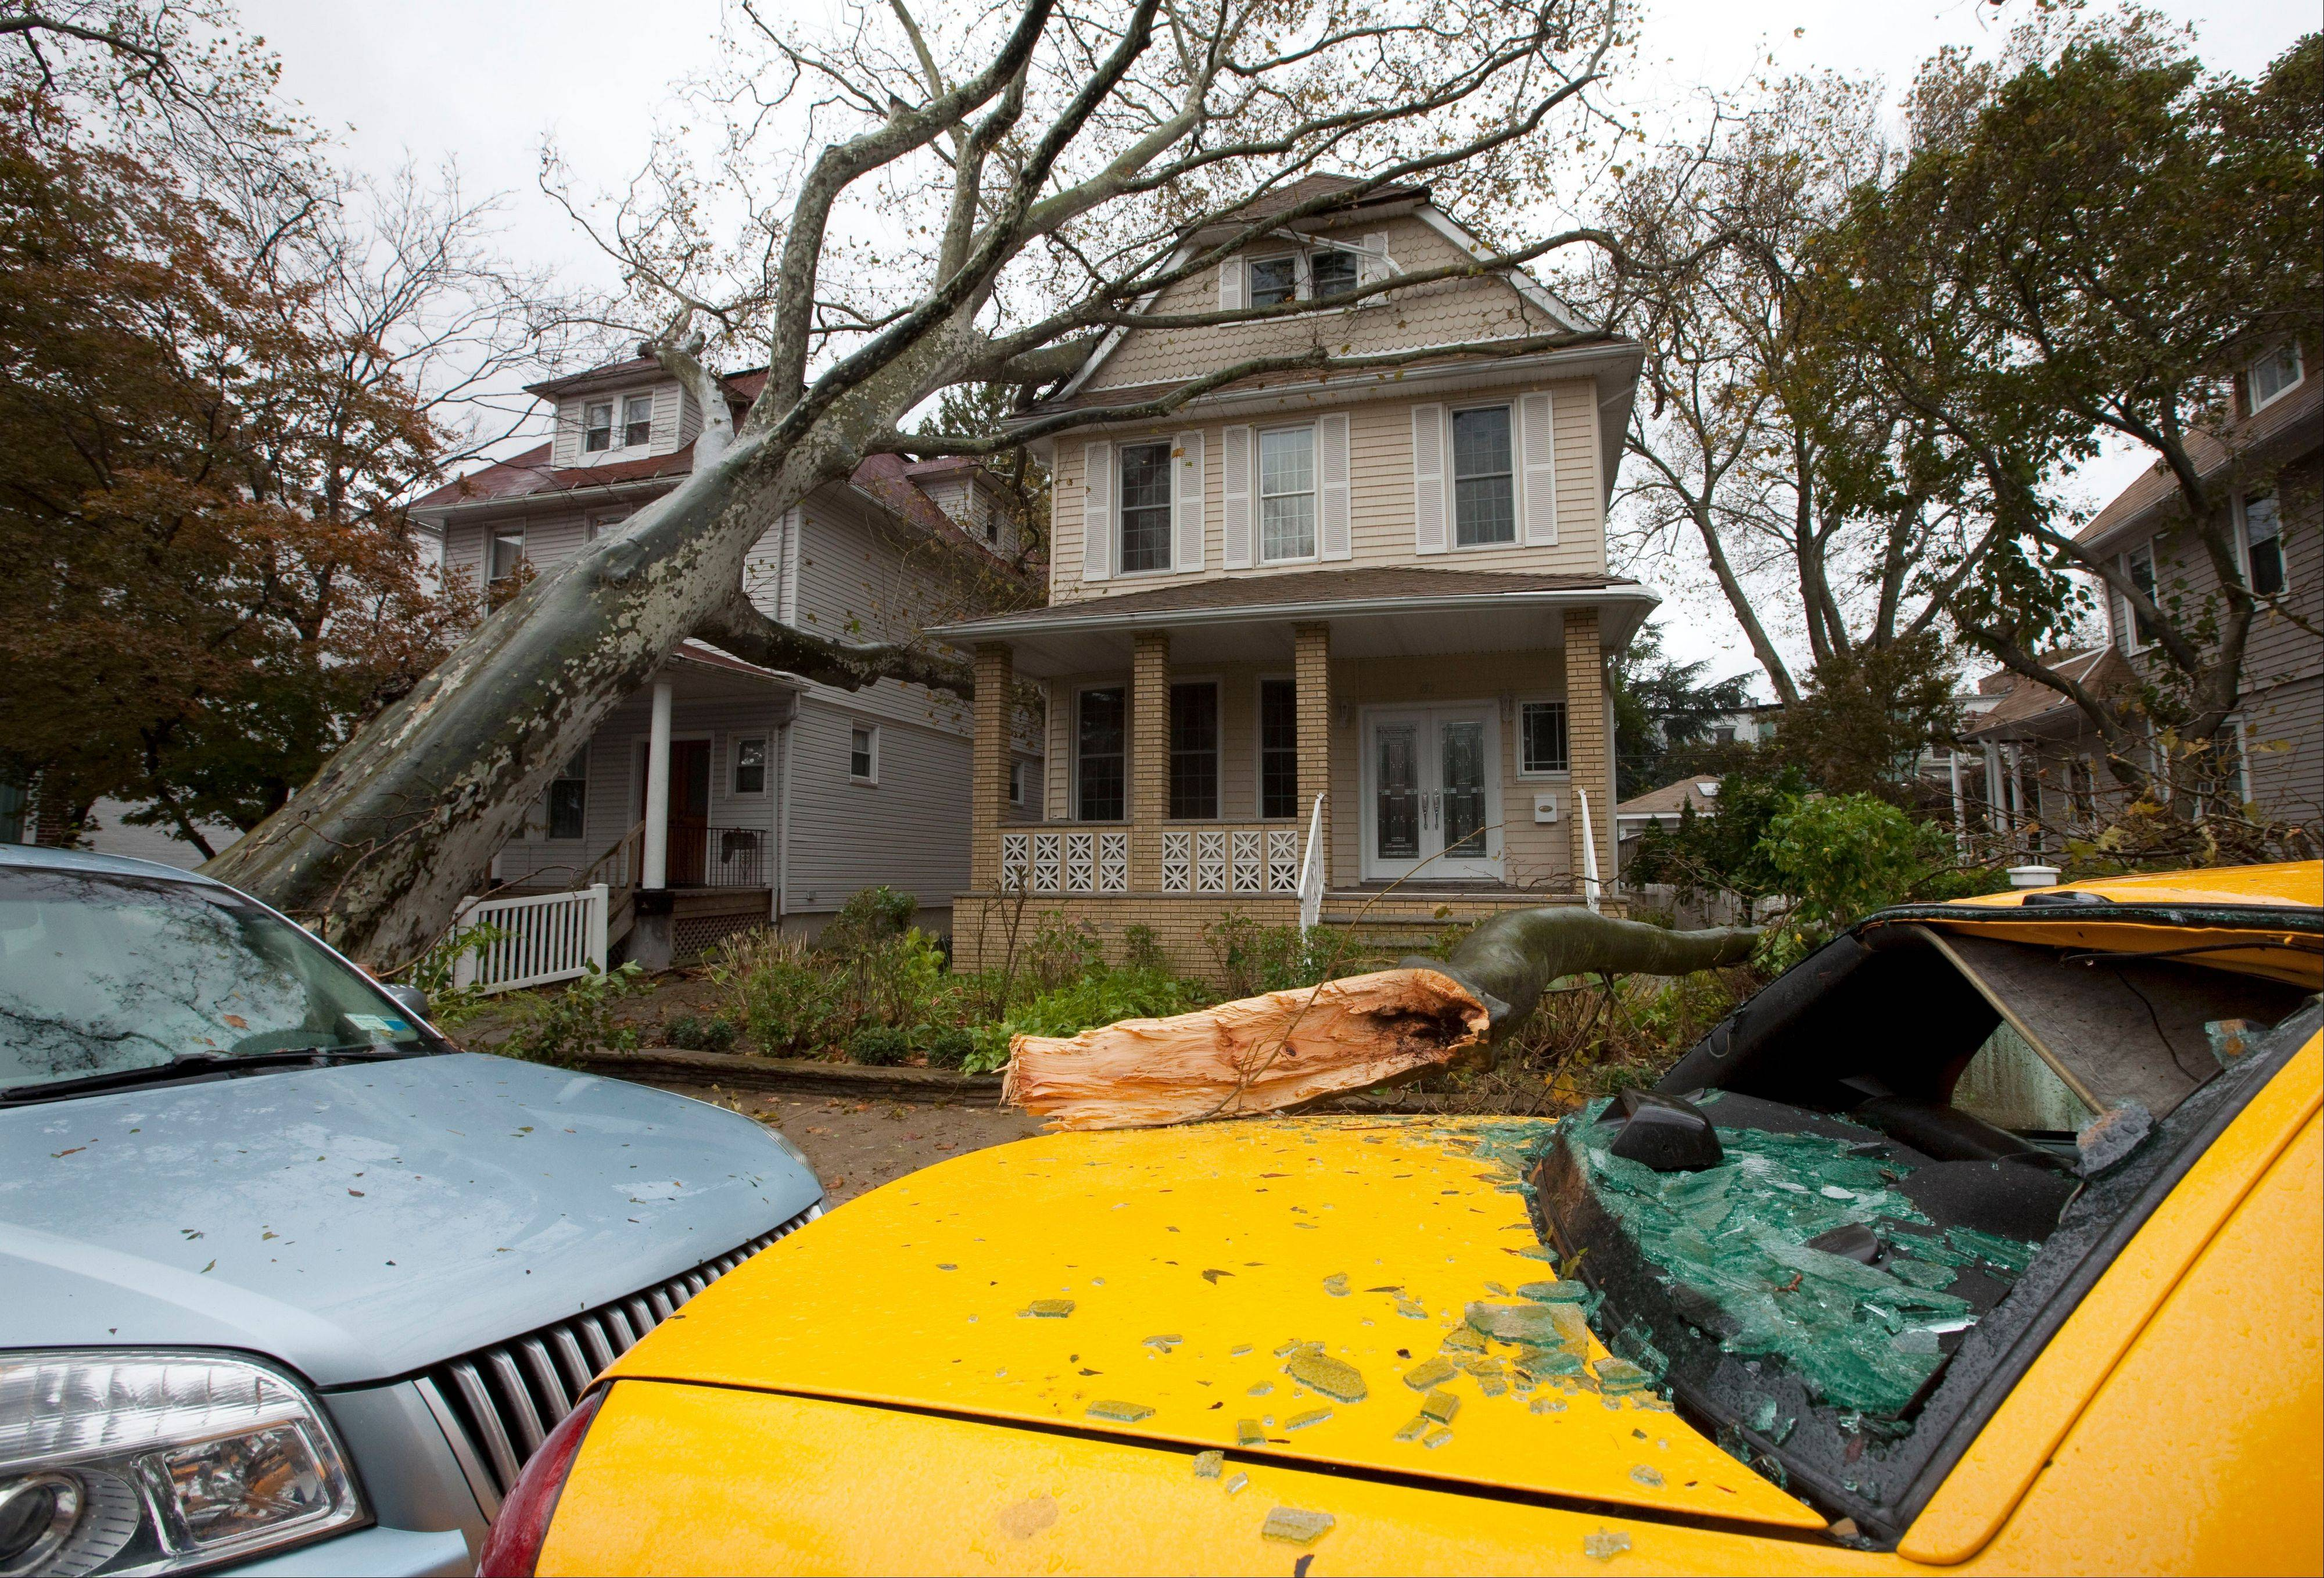 A tree leans against a house Tuesday, Oct. 30, 2012, in the Bay Ridge neighborhood in the Brooklyn borough of New York, while another tree lies on a taxi with a shattered rear window in the aftermath of superstorm Sandy. New York City awakened Tuesday to a flooded subway system, shuttered financial markets and hundreds of thousands of people without power a day after a wall of seawater and high winds slammed into the city, destroying buildings and flooding tunnels.